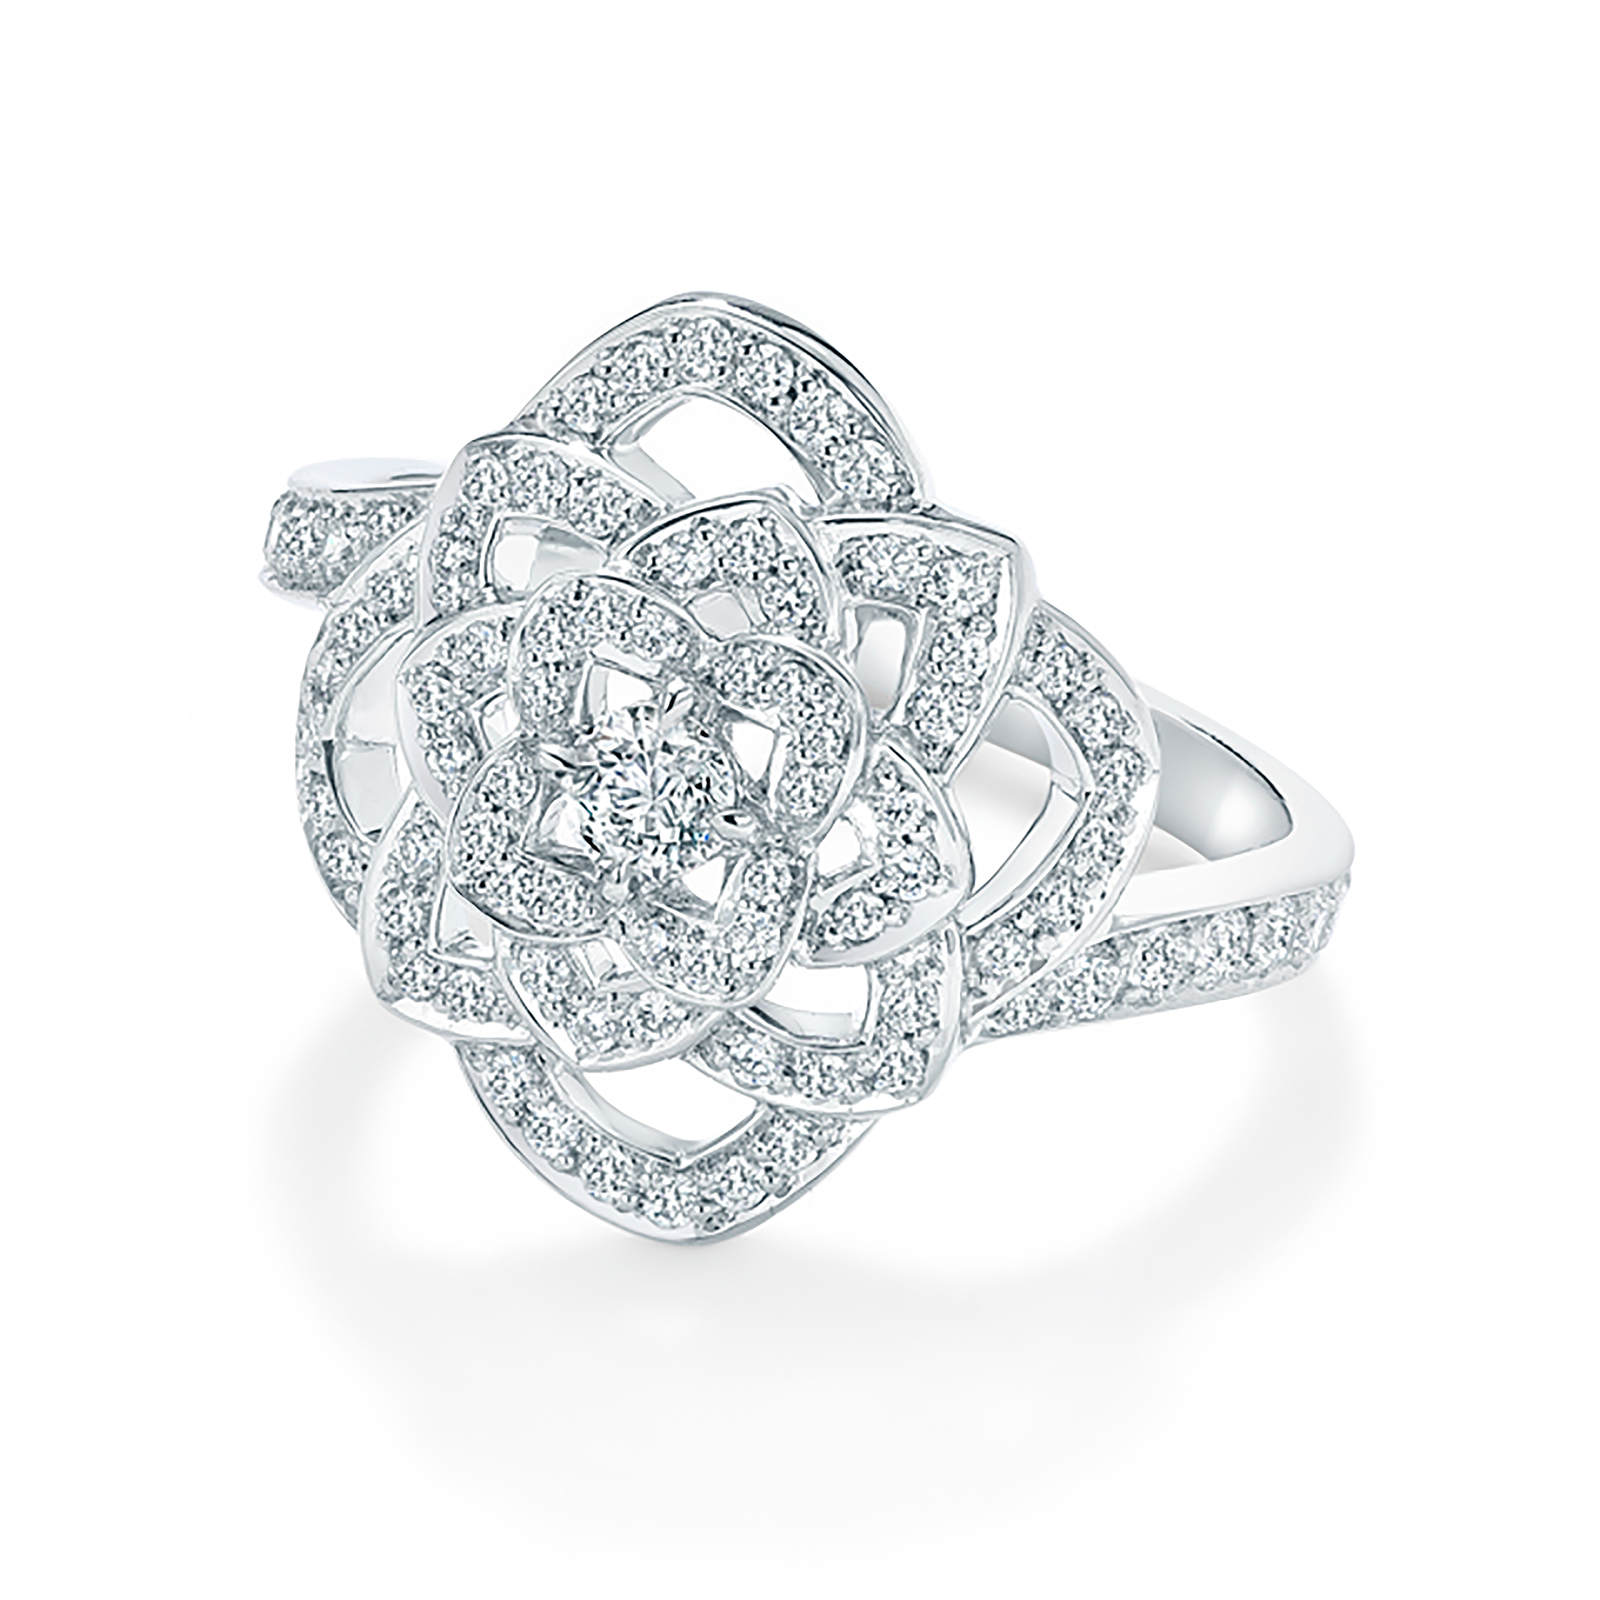 Floresco White Gold and Diamond Ring